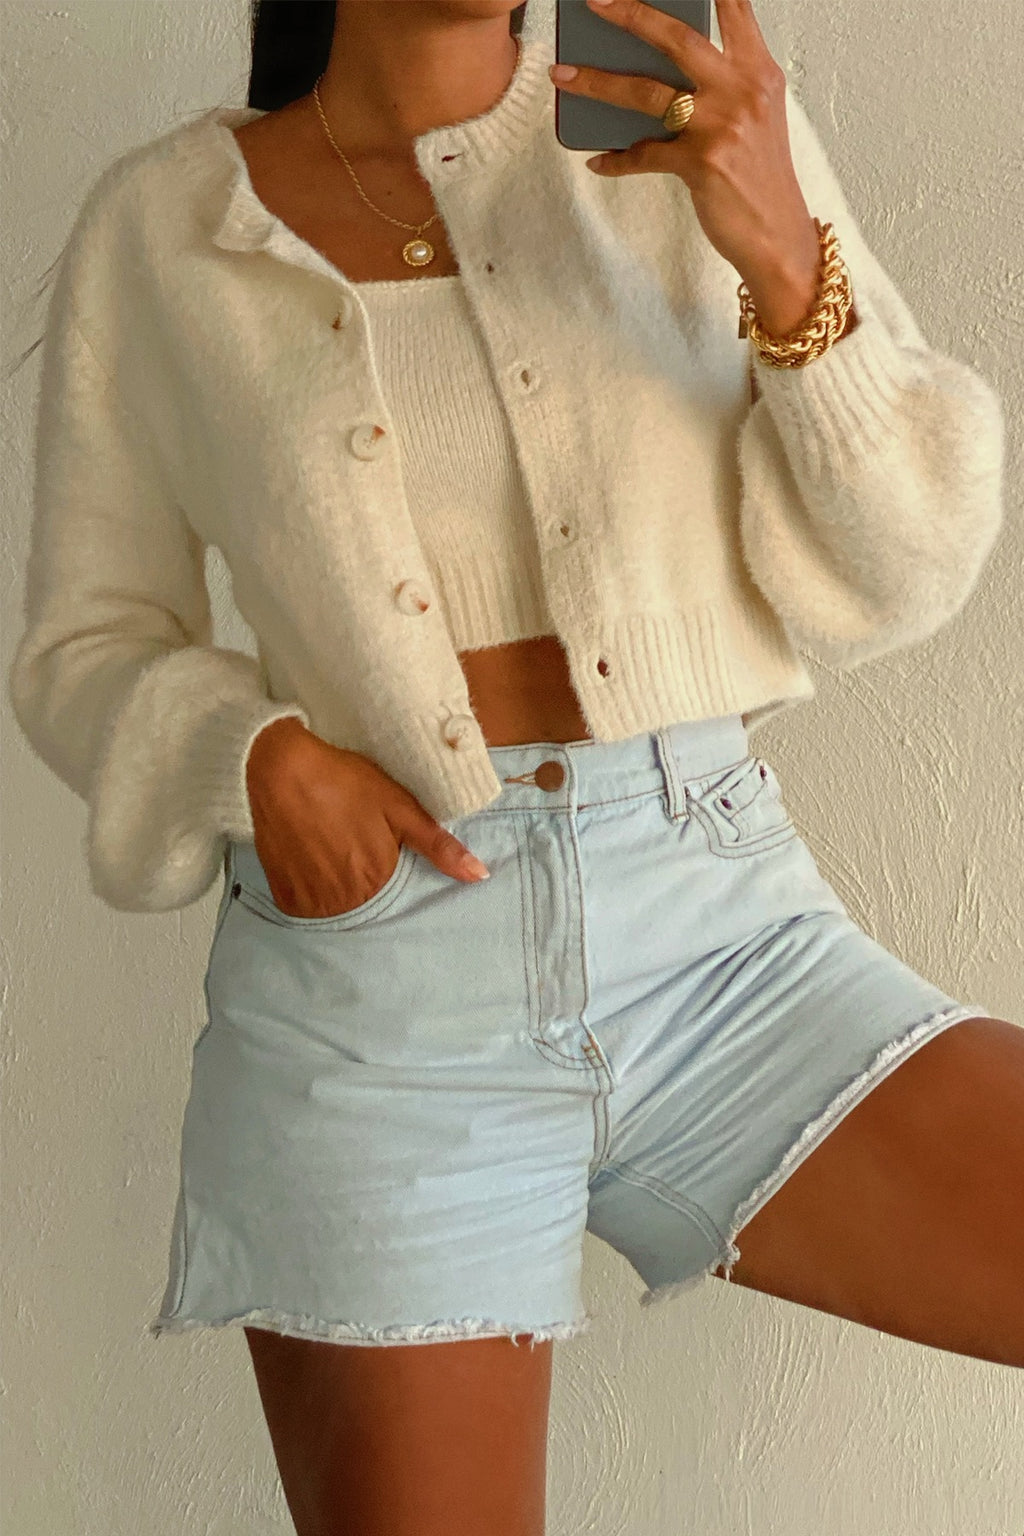 RESTOCKED: So Fetch White Fuzzy Cardigan